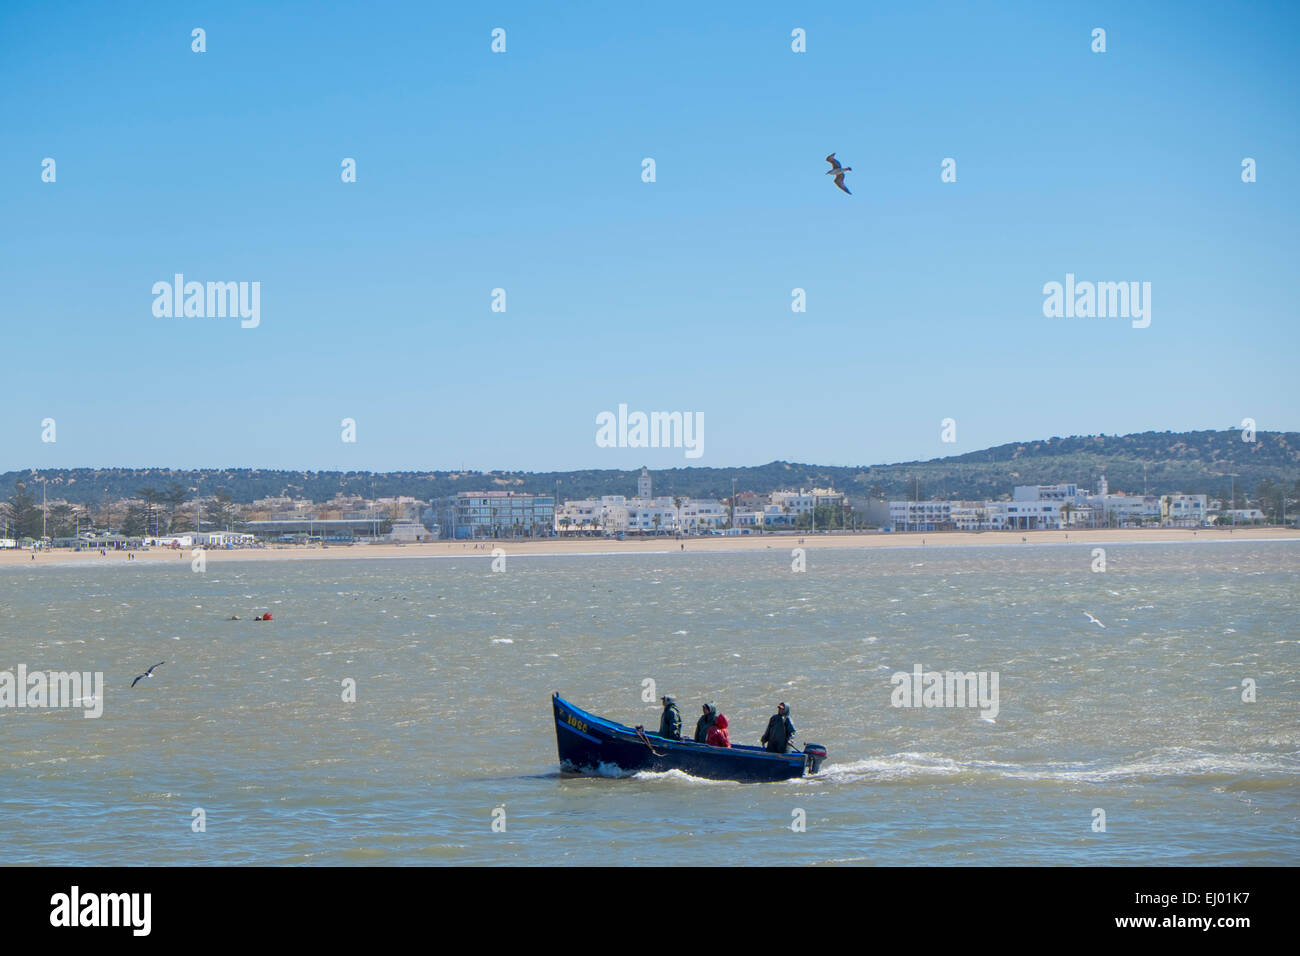 Fishing boat approaching the harbour at Essaouira, Morocco, North Africa - Stock Image